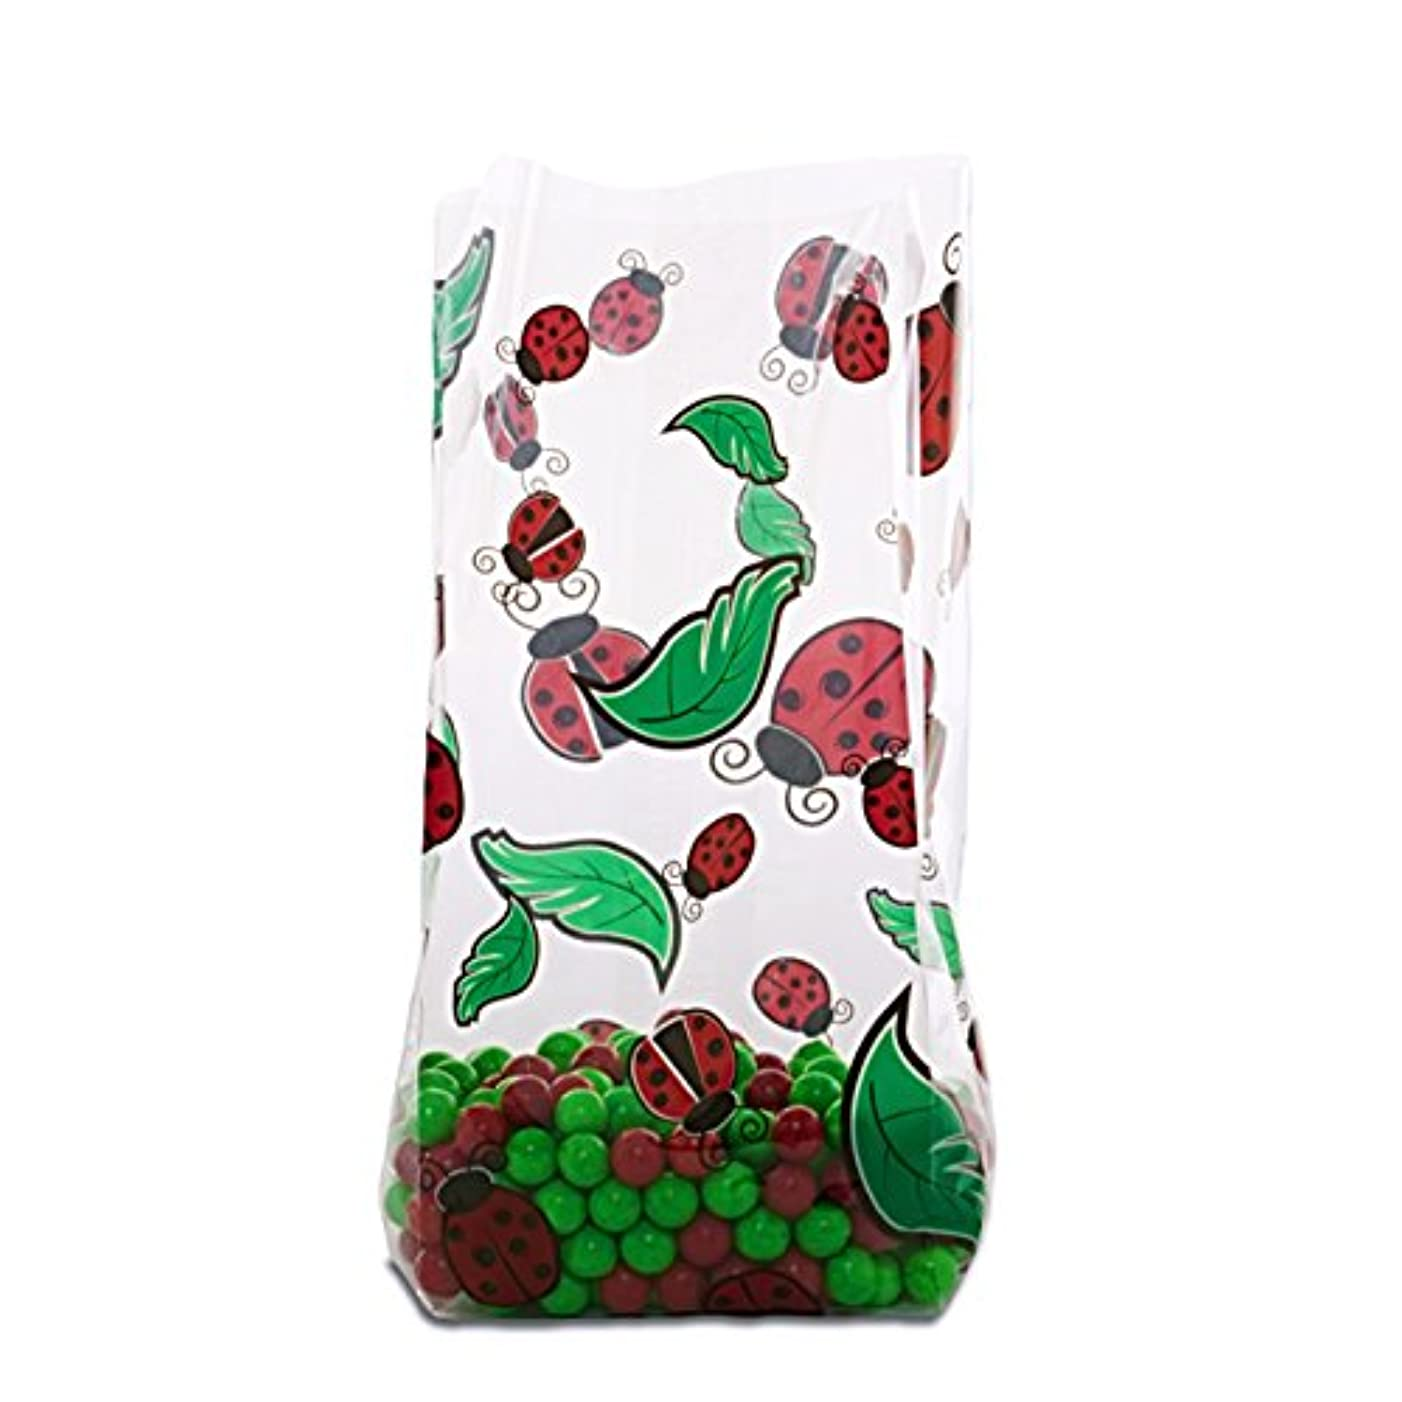 Ladybugs Cello Bags 4